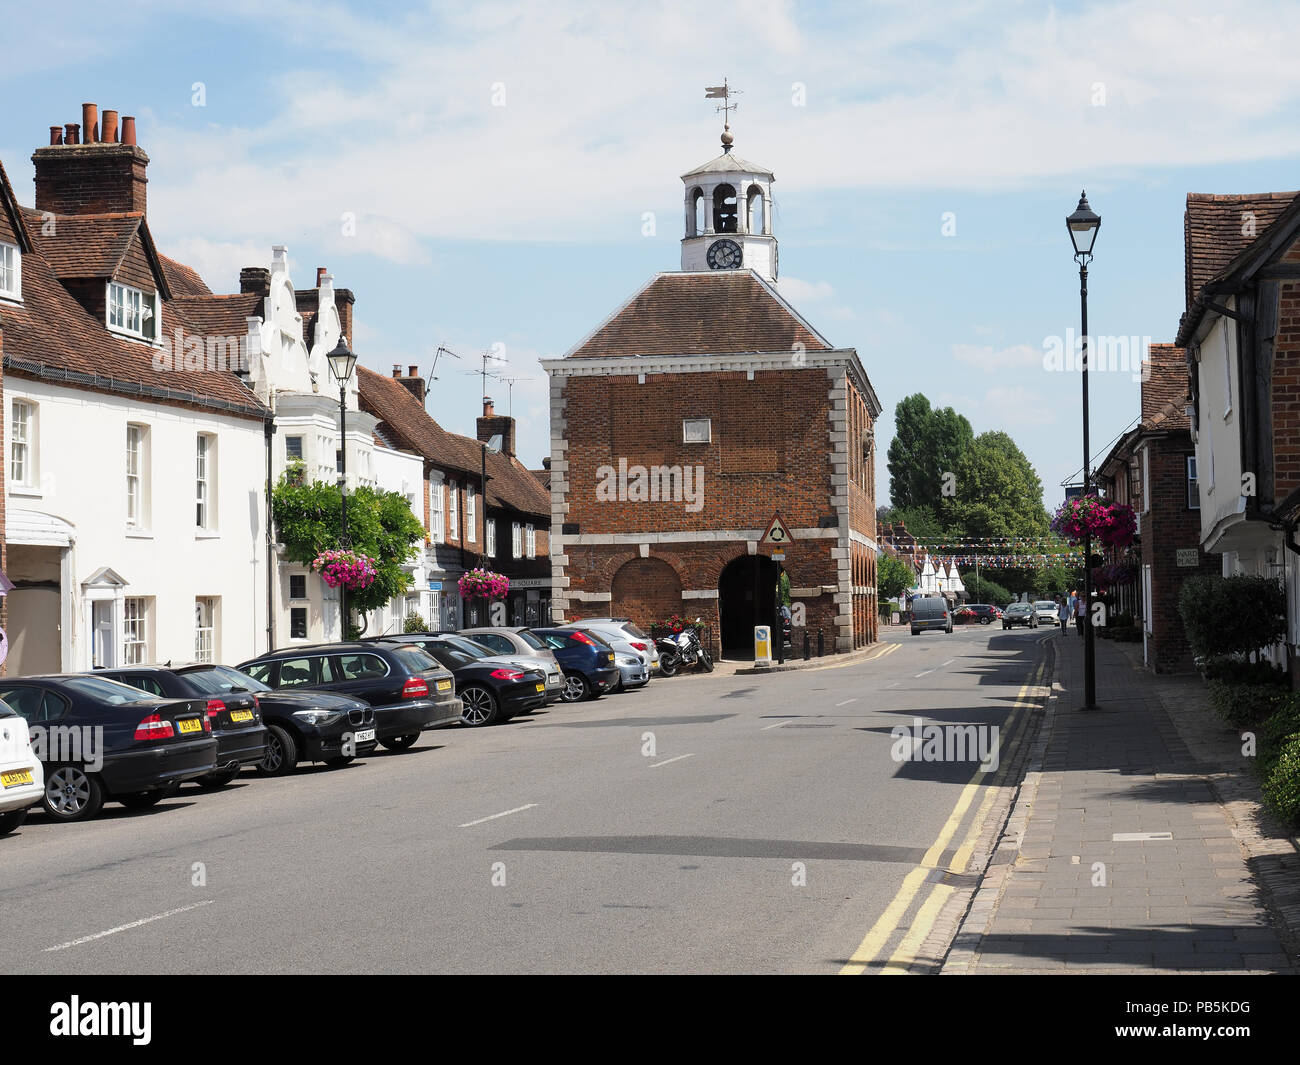 View of the High Street in Old Amersham Town in Buckinghamshire. Stock Photo